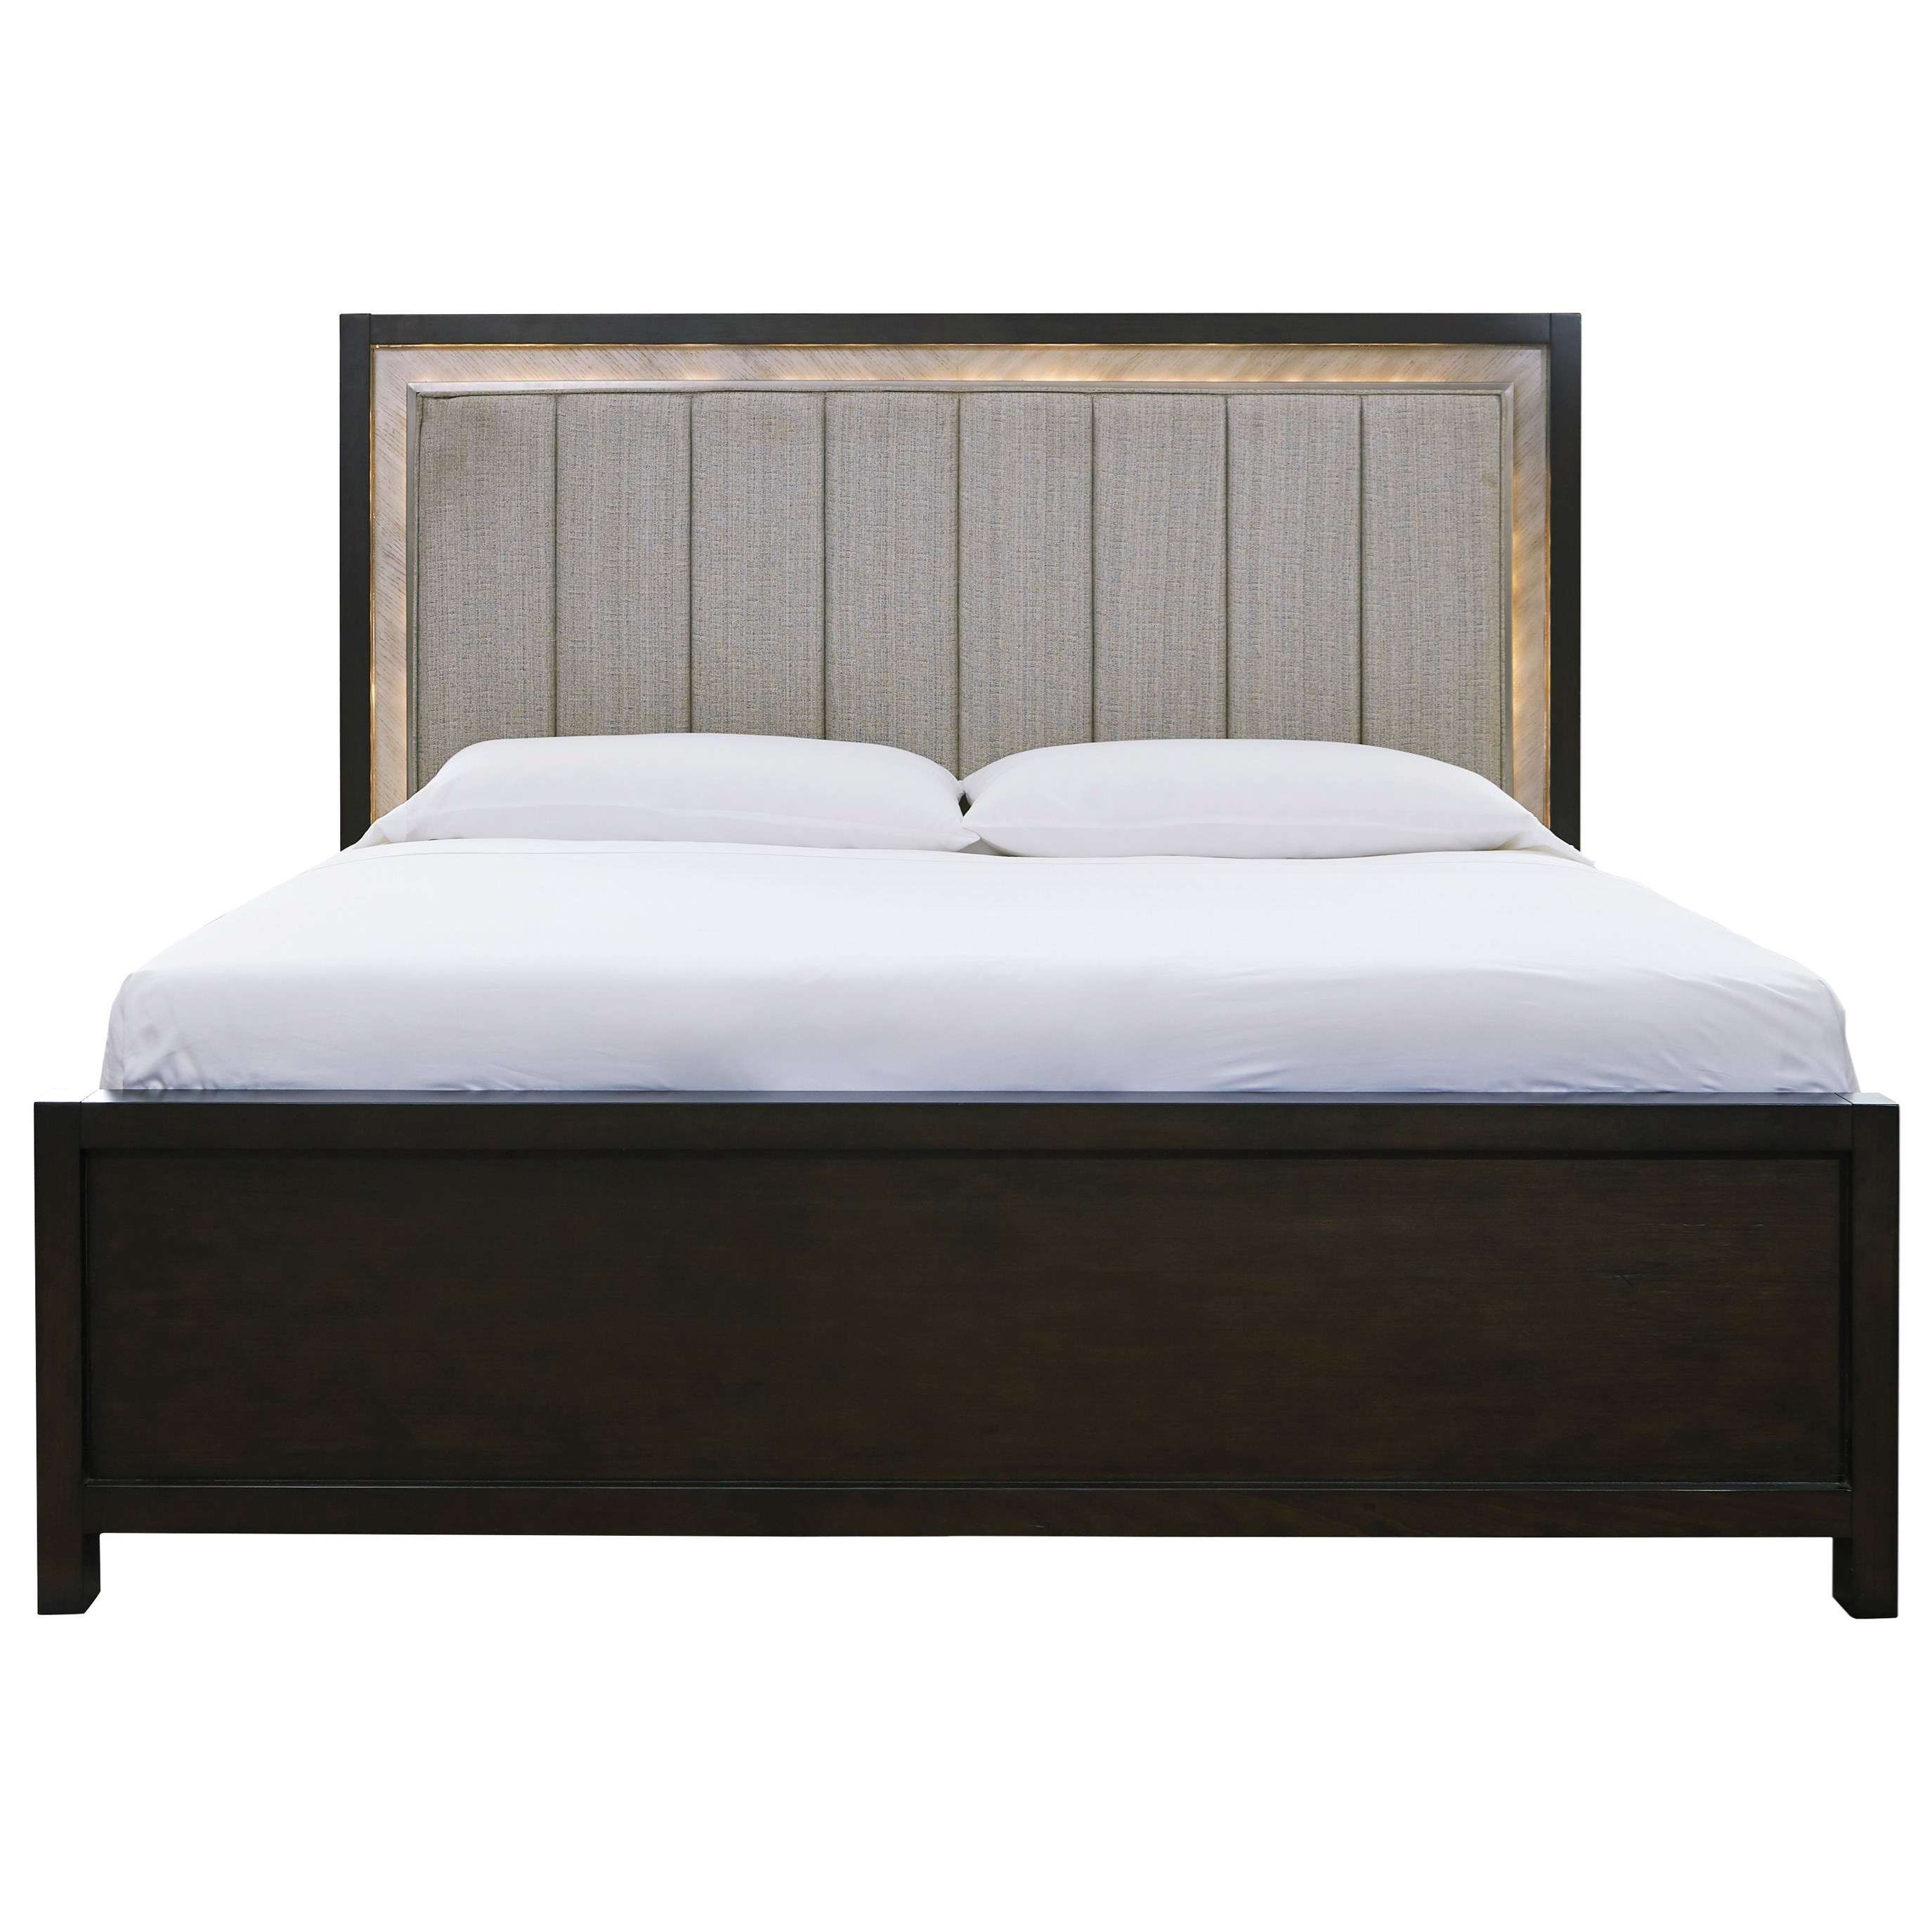 Contemporary King Upholstered Bed with LED Back Light